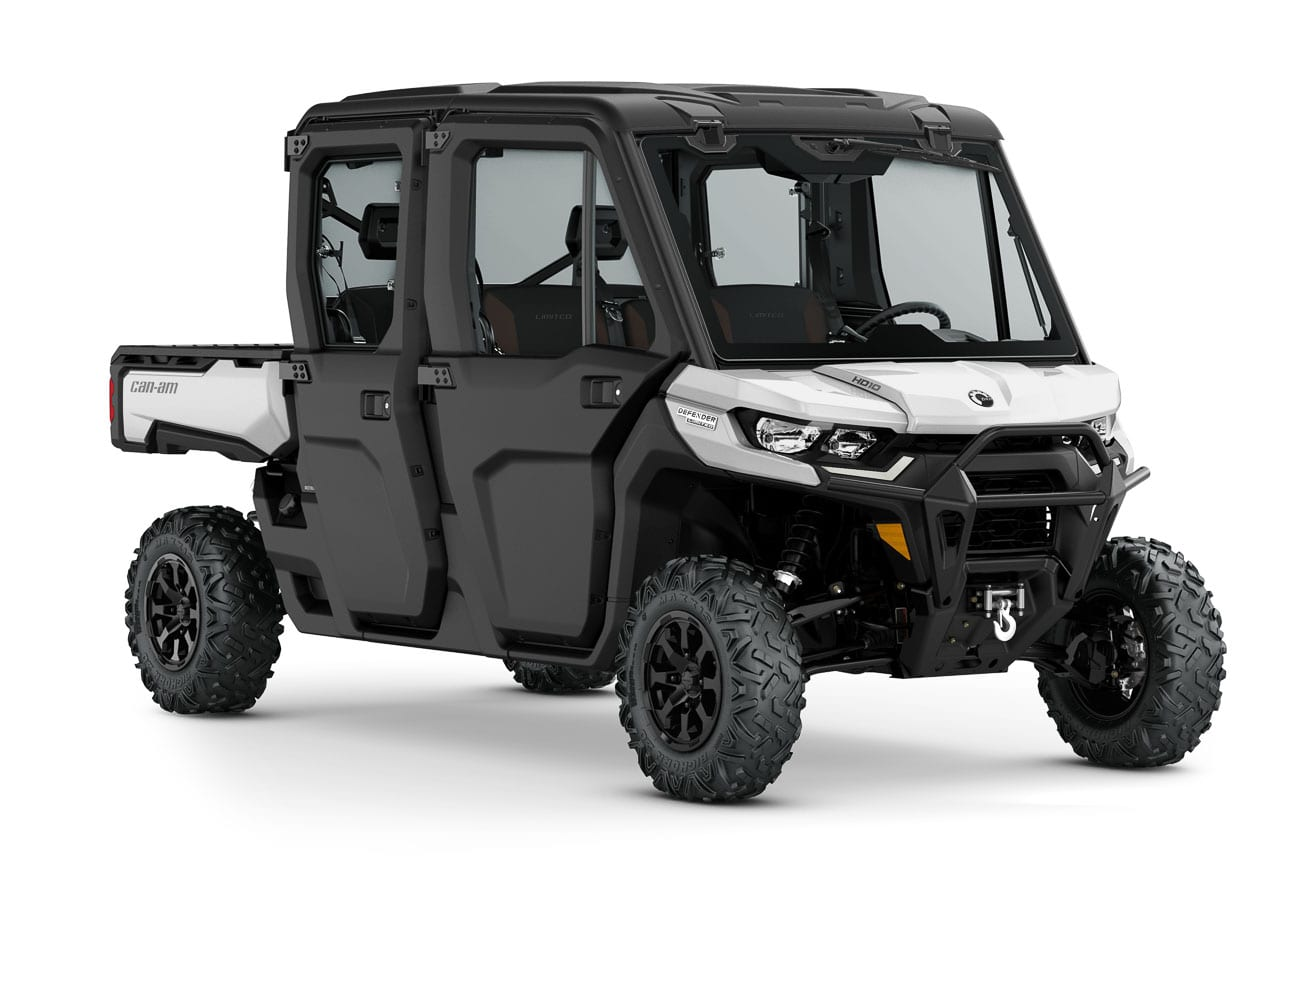 New Lineup of 2020 Can-Am Defender Side-by-Side Vehicles